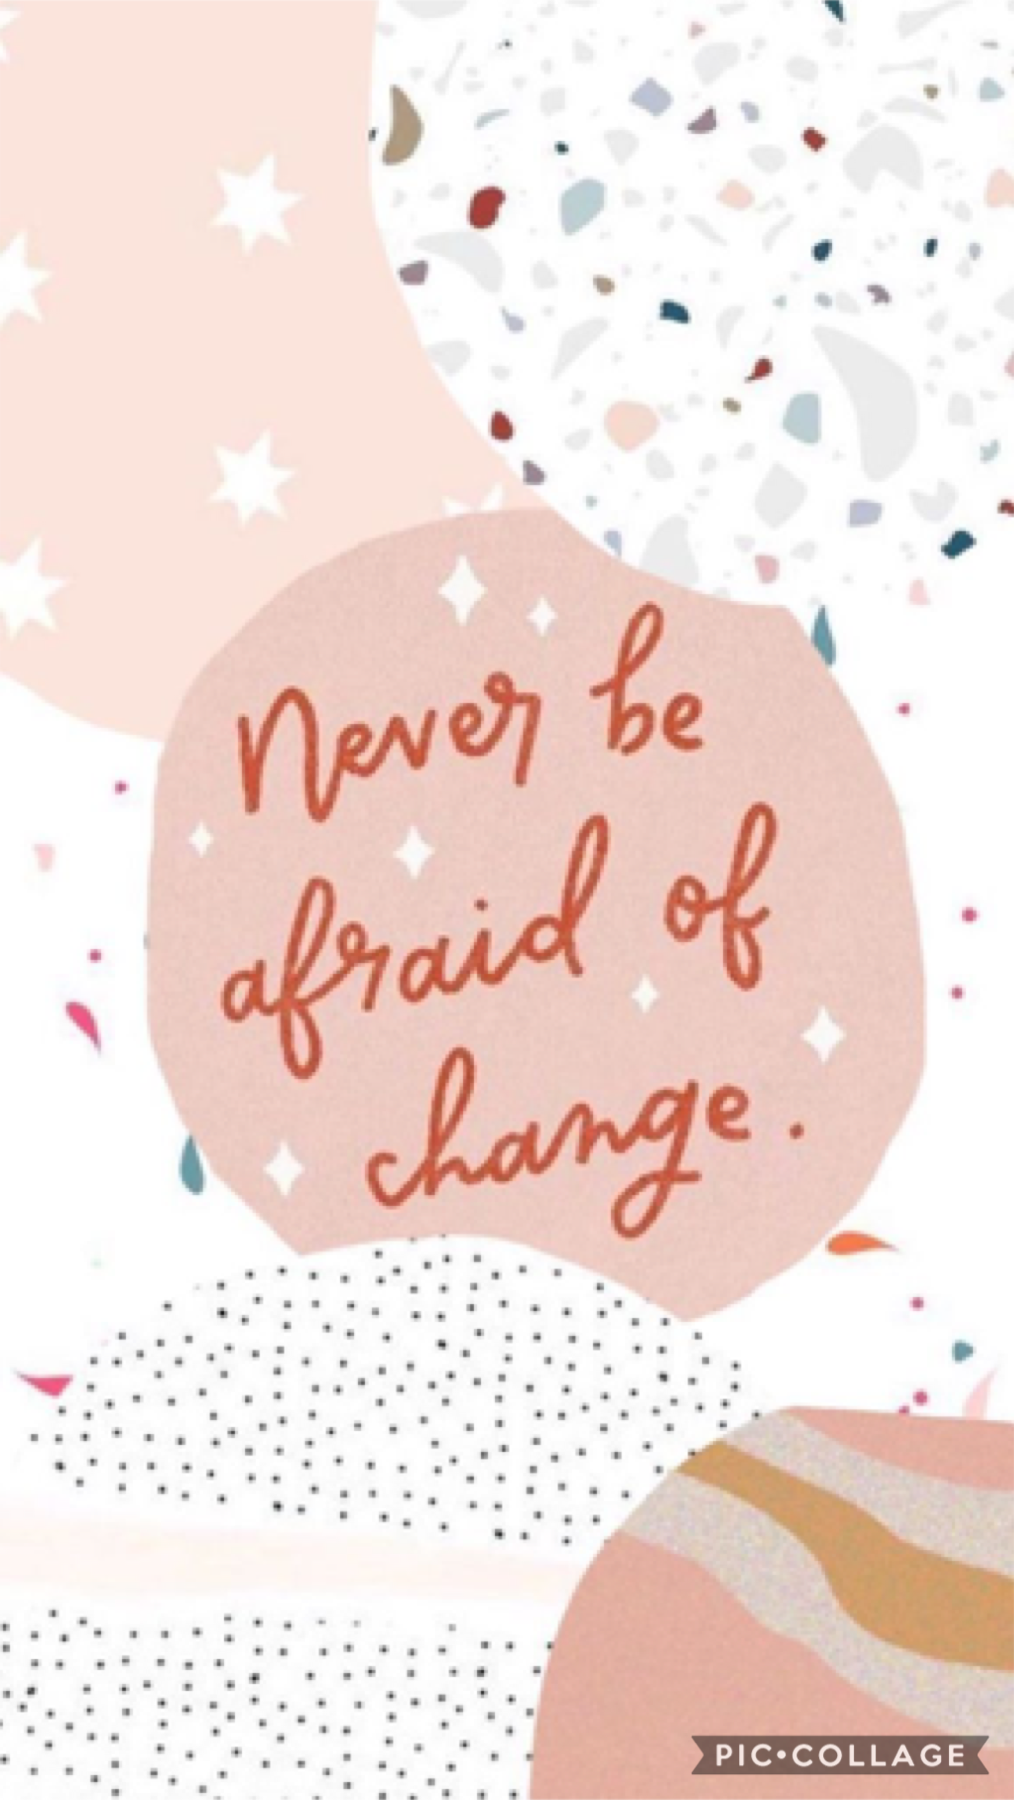 Change is something not to be afraid of